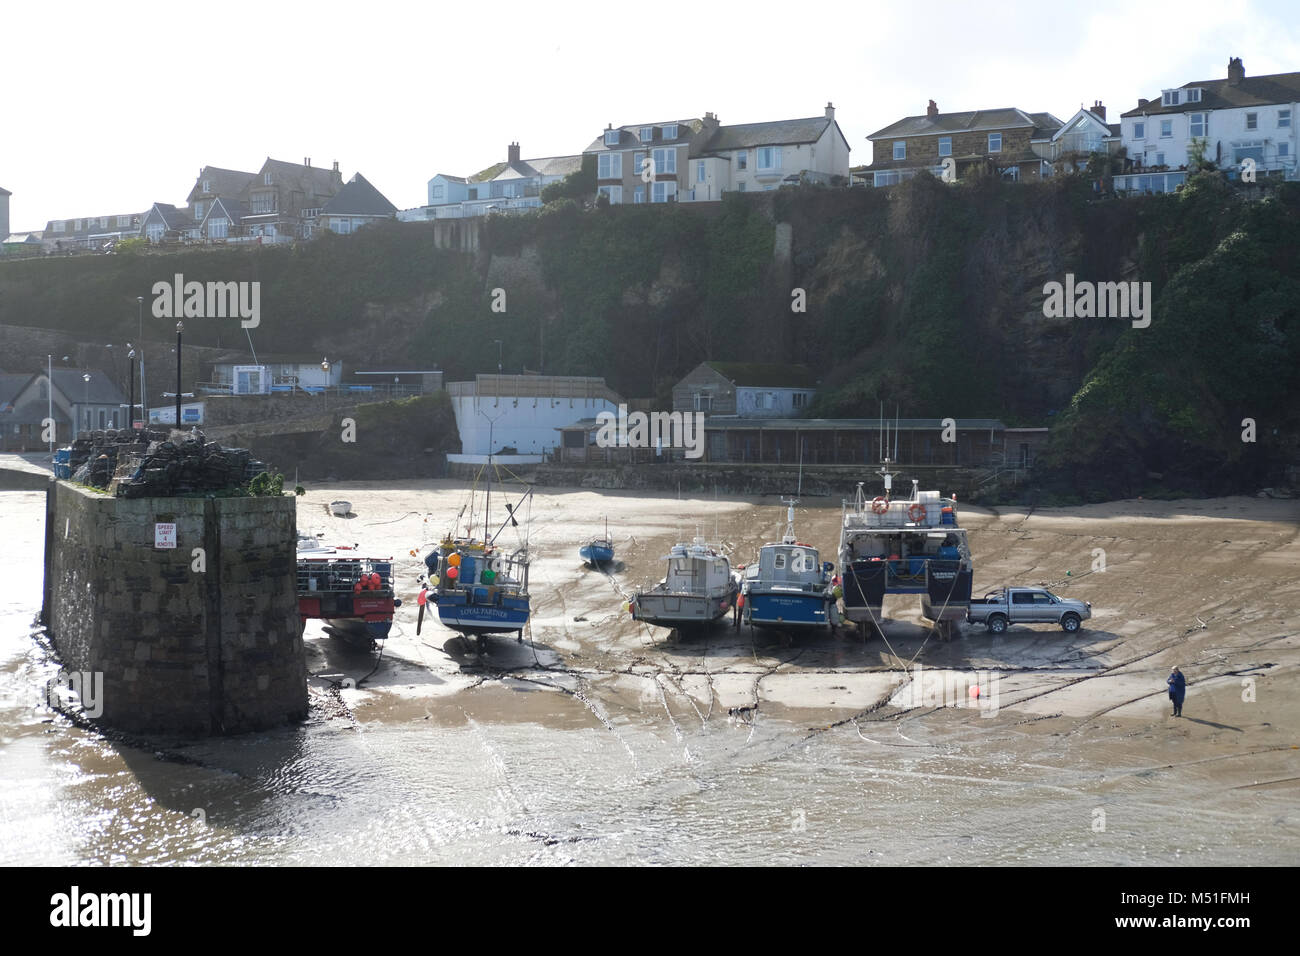 Newquay harbour/beach in winter. - Stock Image